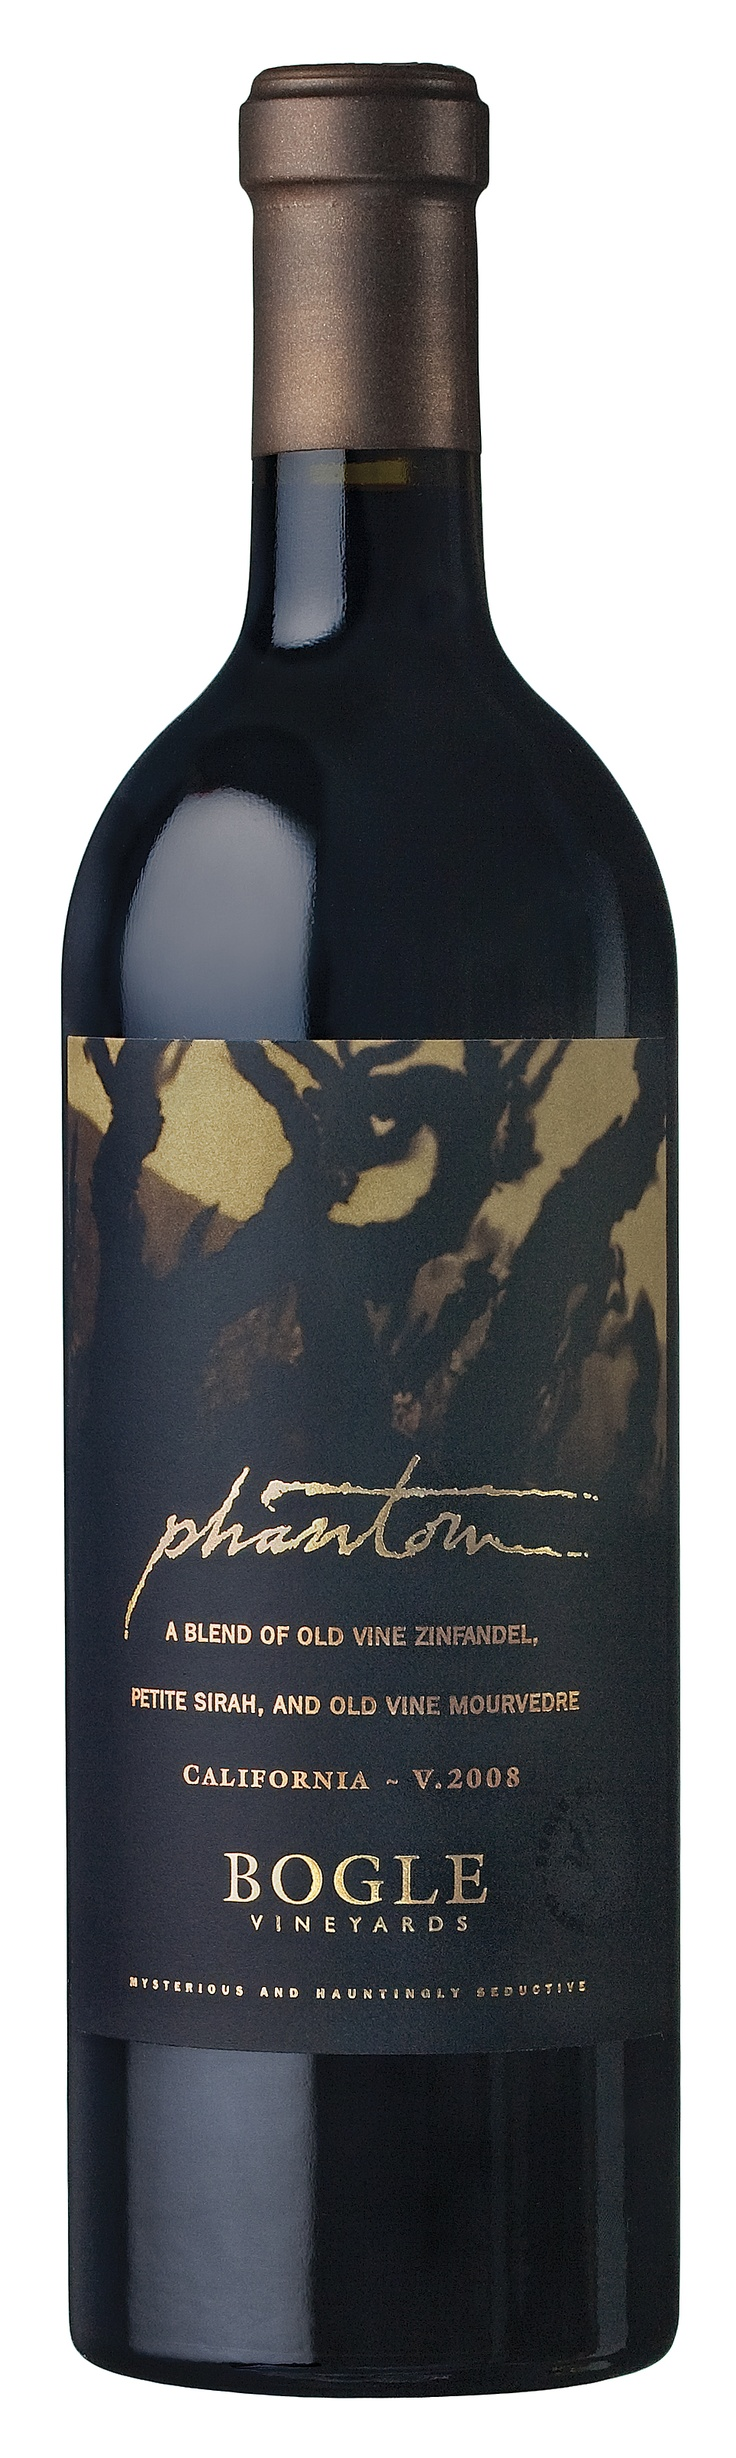 Bogle Phantom red wine - limited relaease. Made from Zinfandel, Petite Sirah and Mourvedre, flavor profile is luscious and intense. Available at Cost Plus - World Market